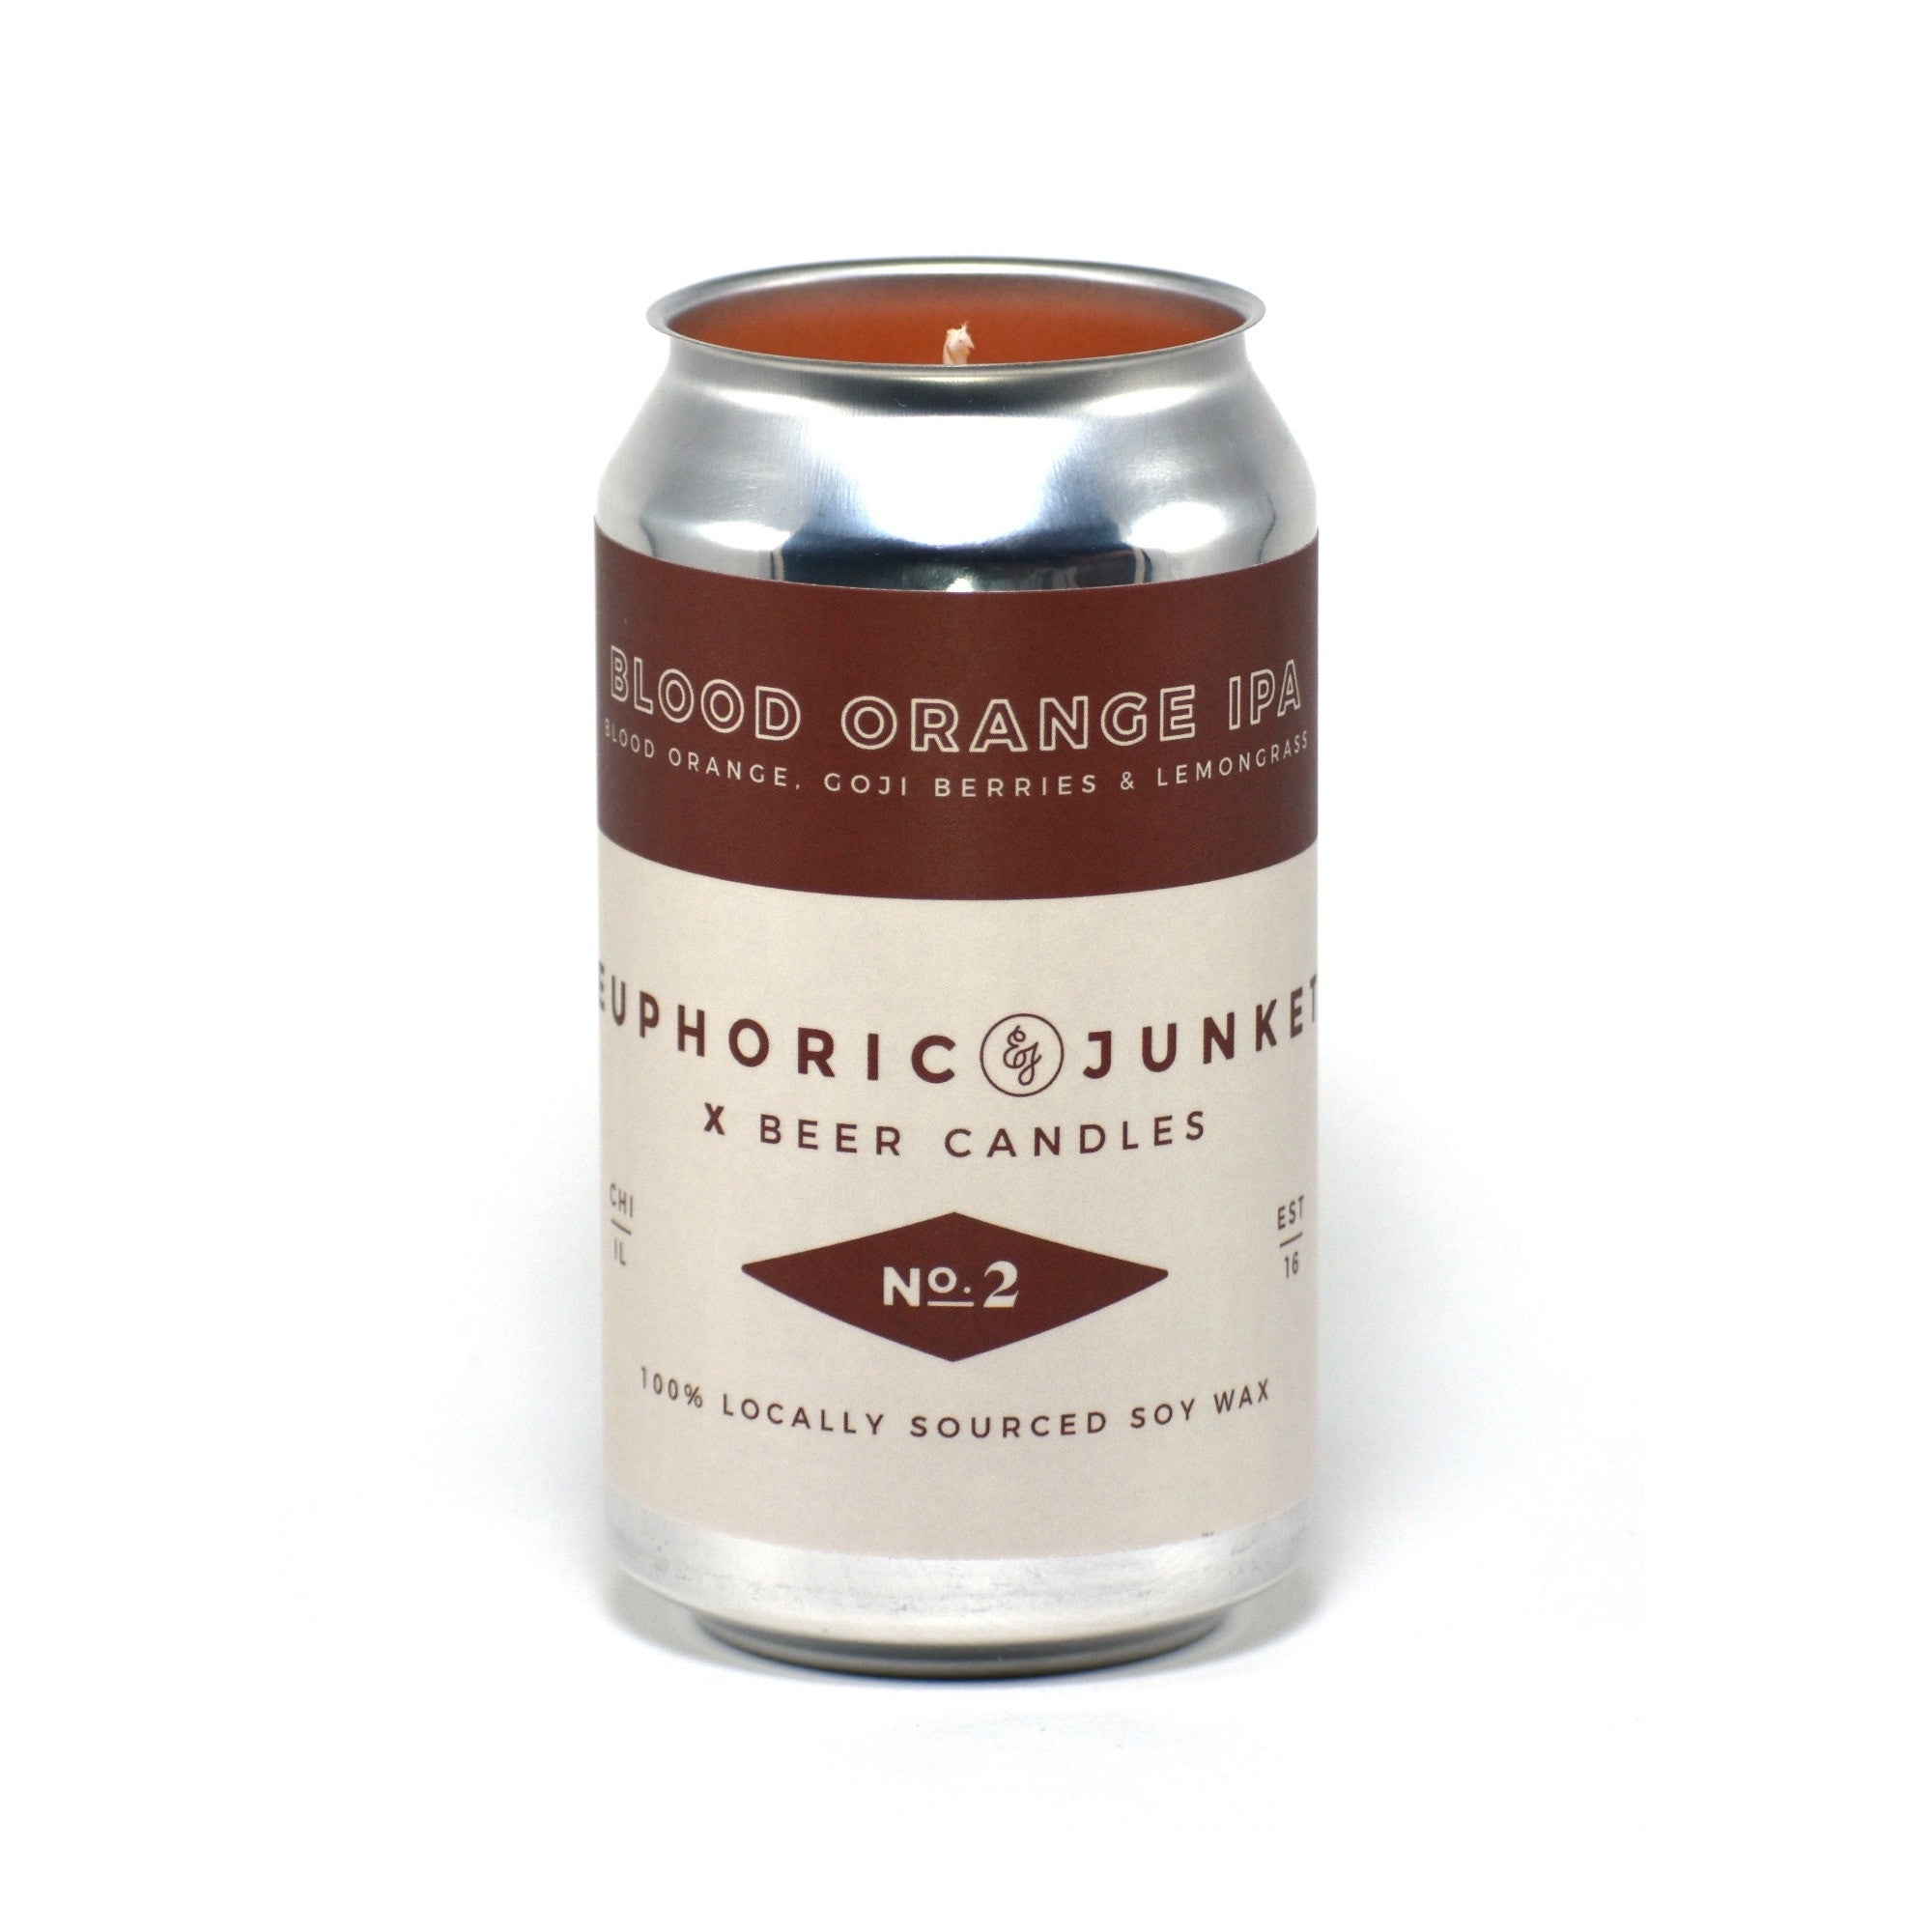 Blood Orange IPA Beer CAN·dle